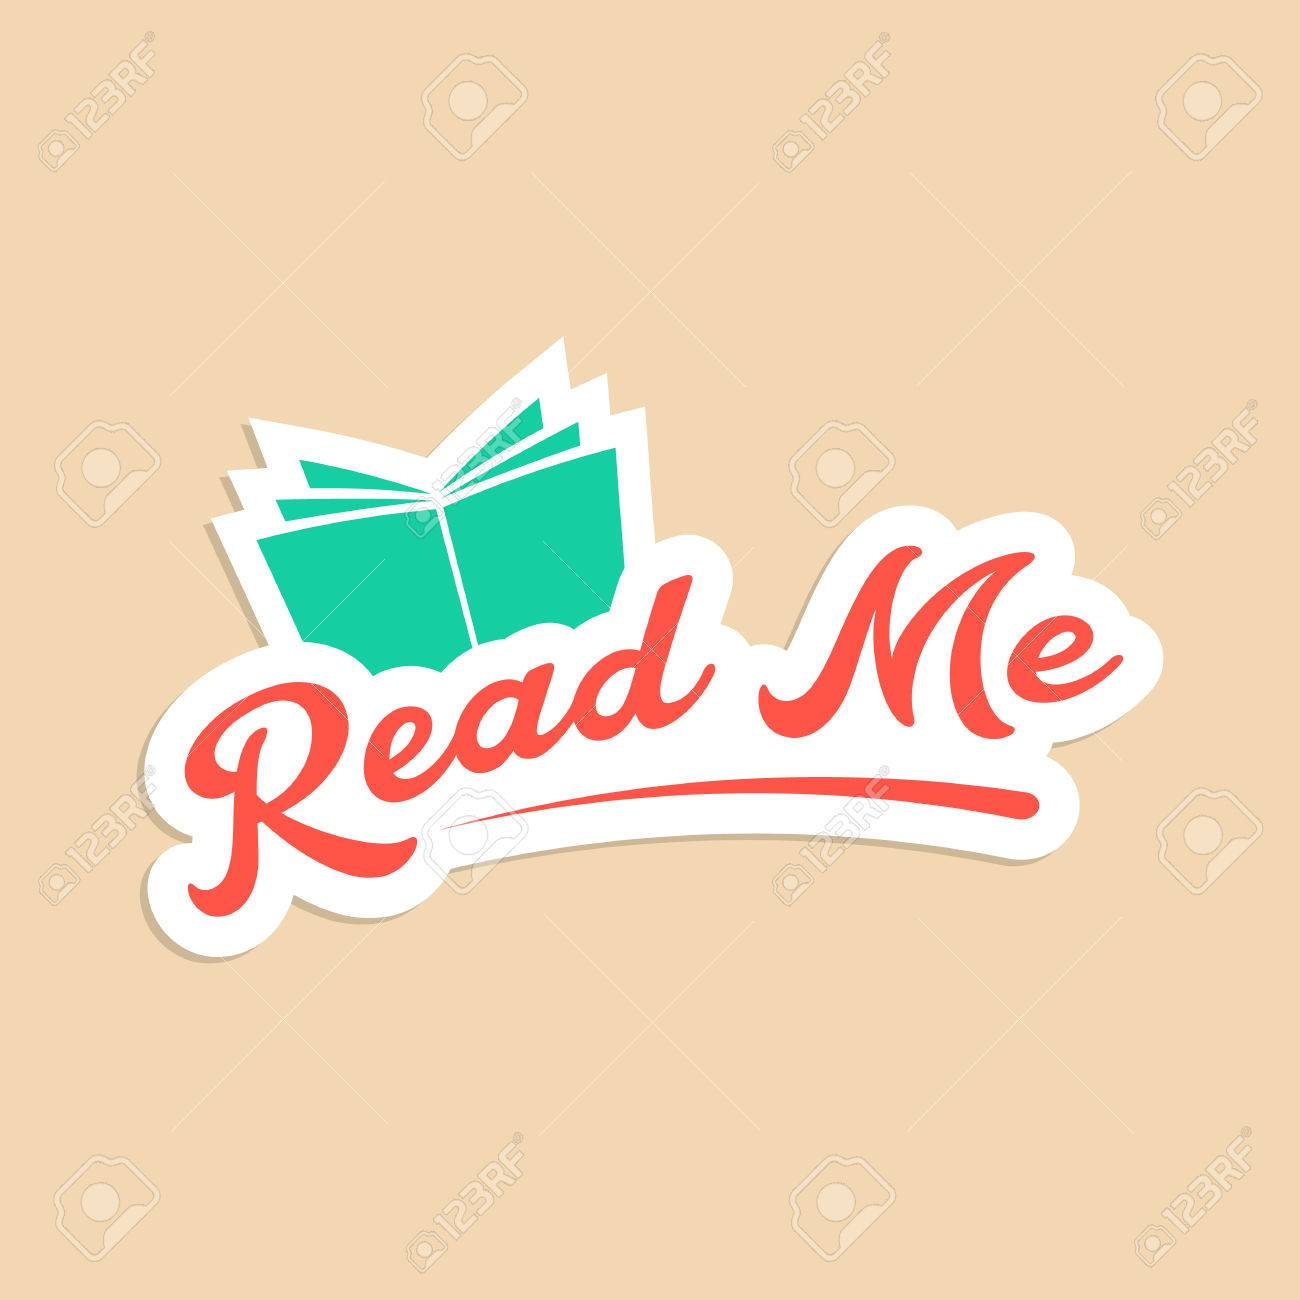 Read Me With Green Book Sticker Concept Of Online Book Store